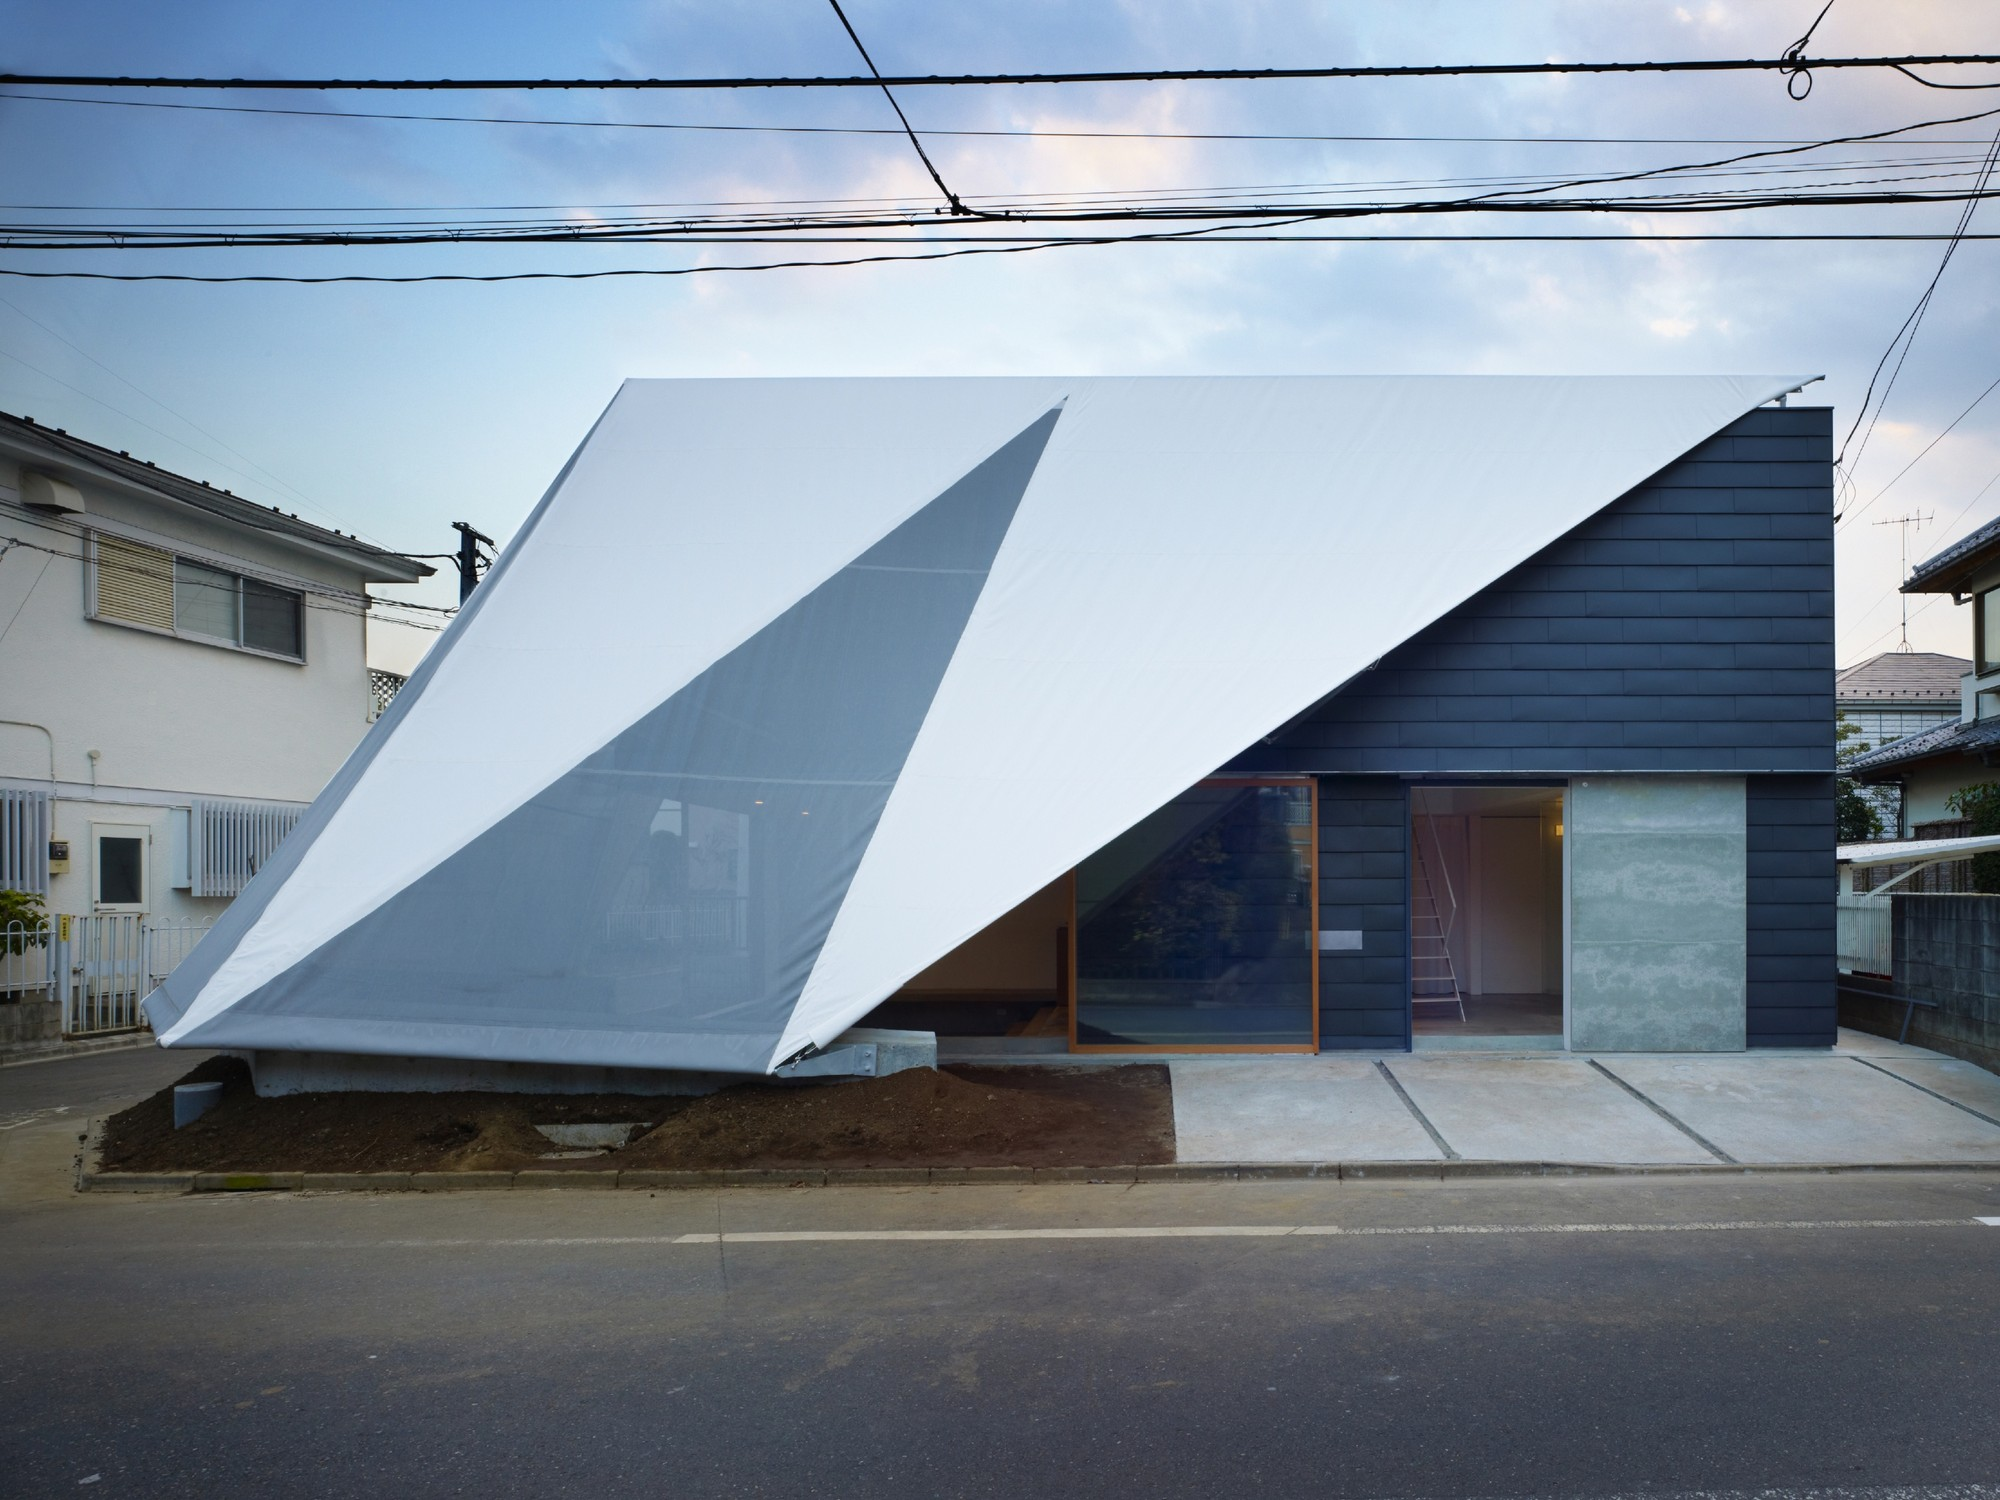 Casa en Kodaira / Suppose Design Office, © Toshiyuki Yano